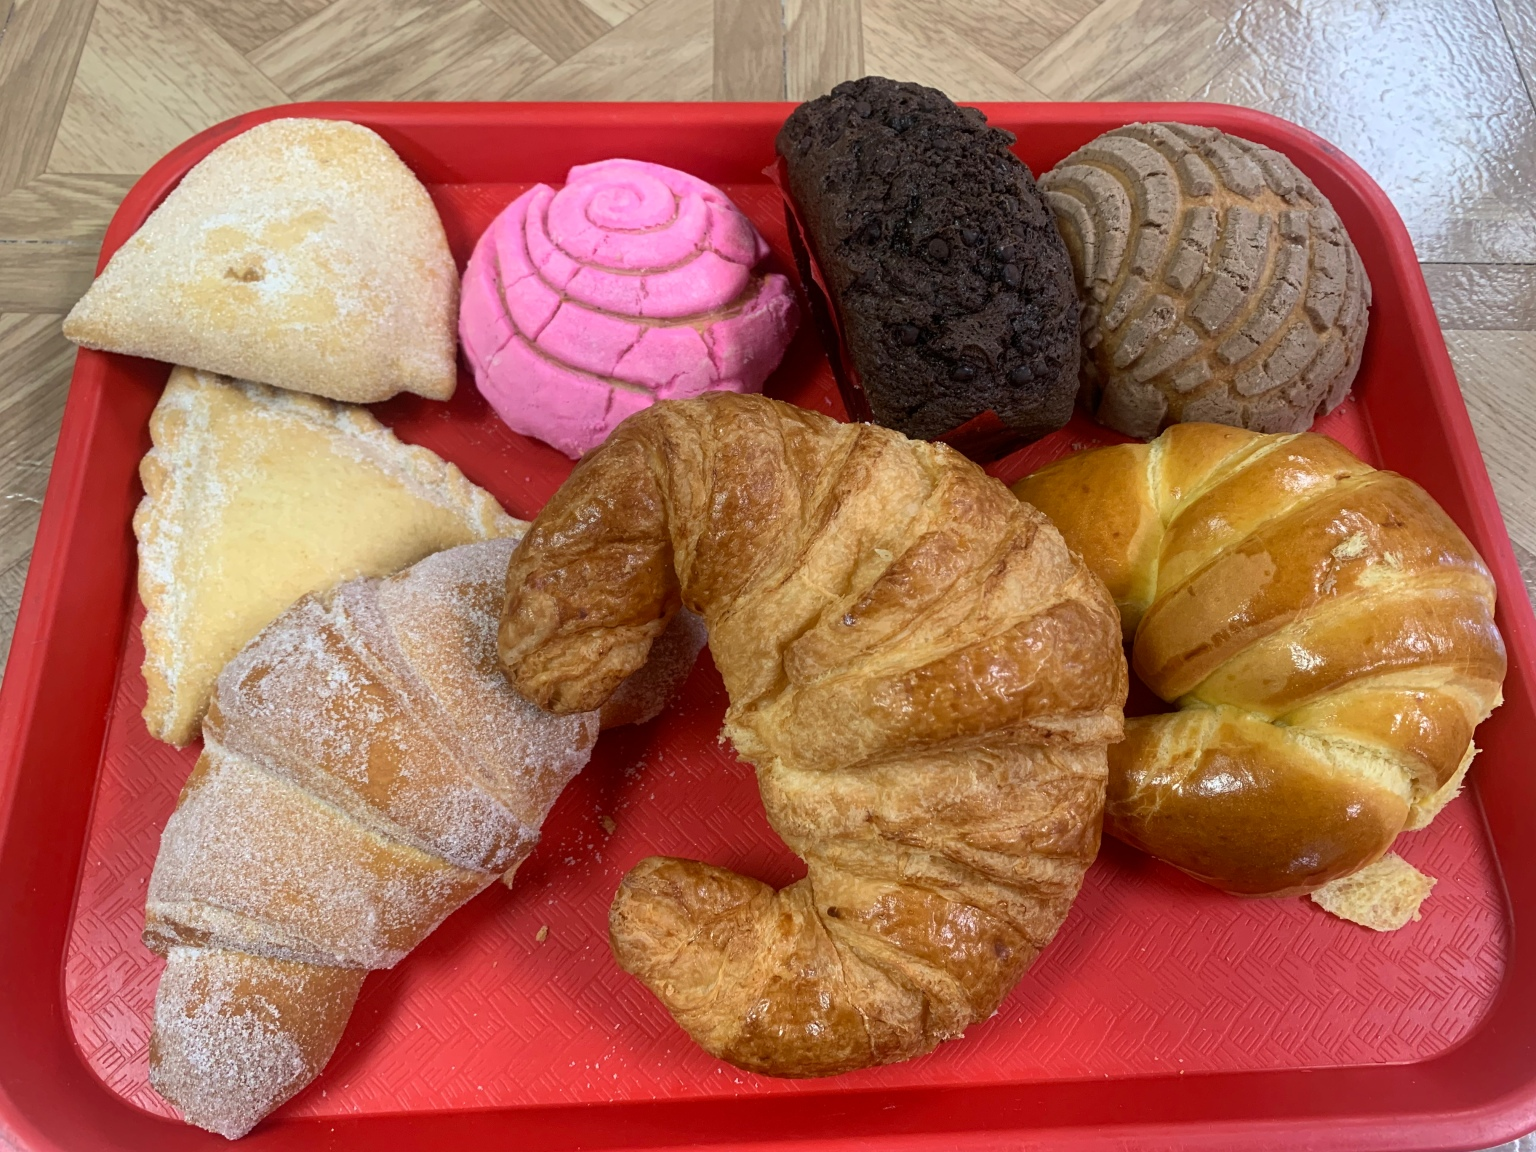 Local Bakery Serves A Taste of Mexico To The Coachella Valley